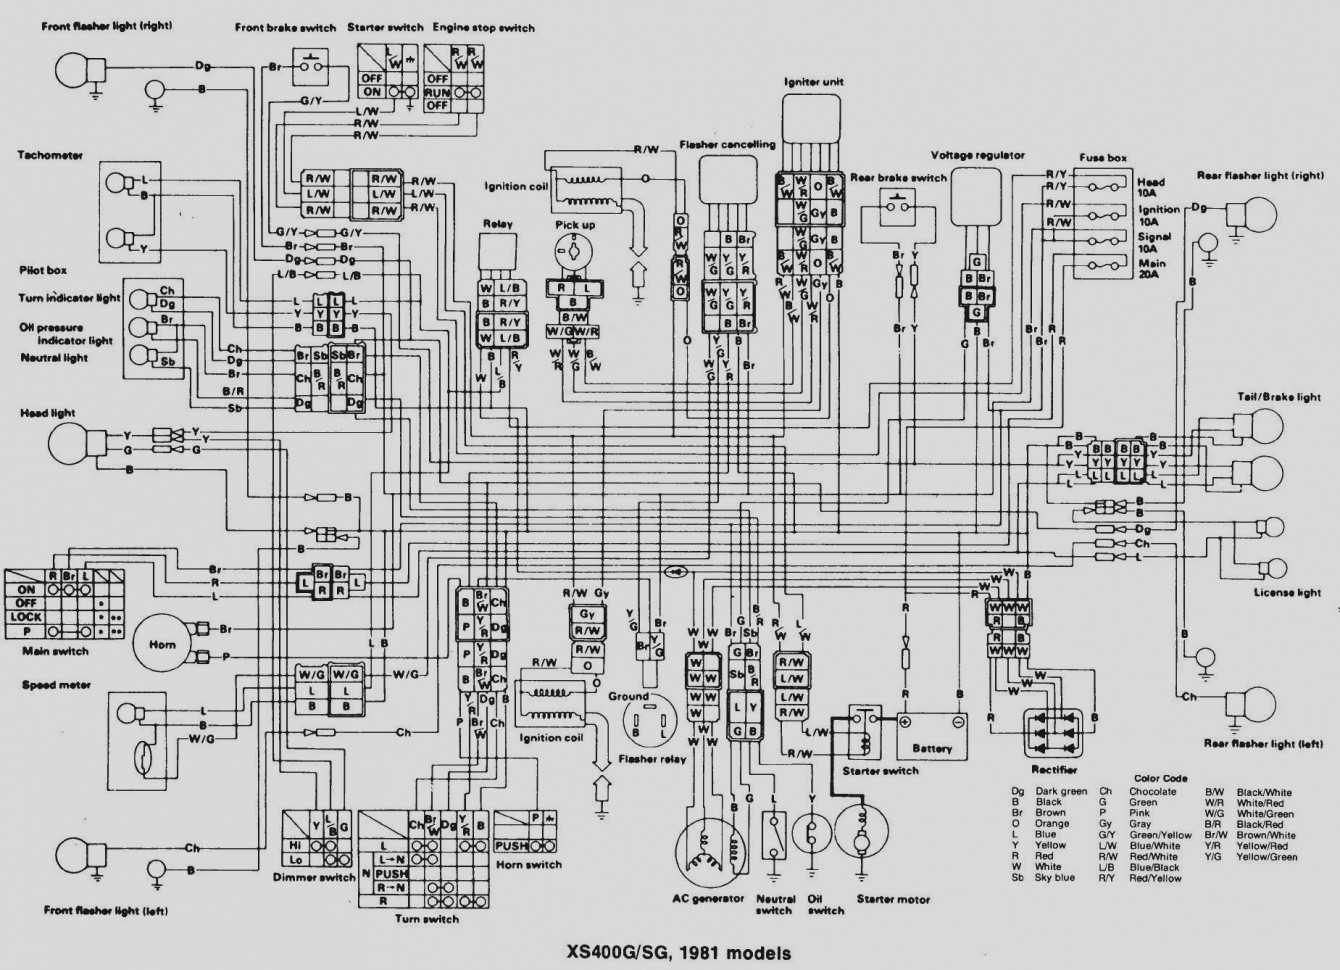 switch wiring diagram for yamaha big bear 4x4 wiring library wiring diagram for a 88 bronco 4x4 switch wiring diagram for yamaha big bear 4x4